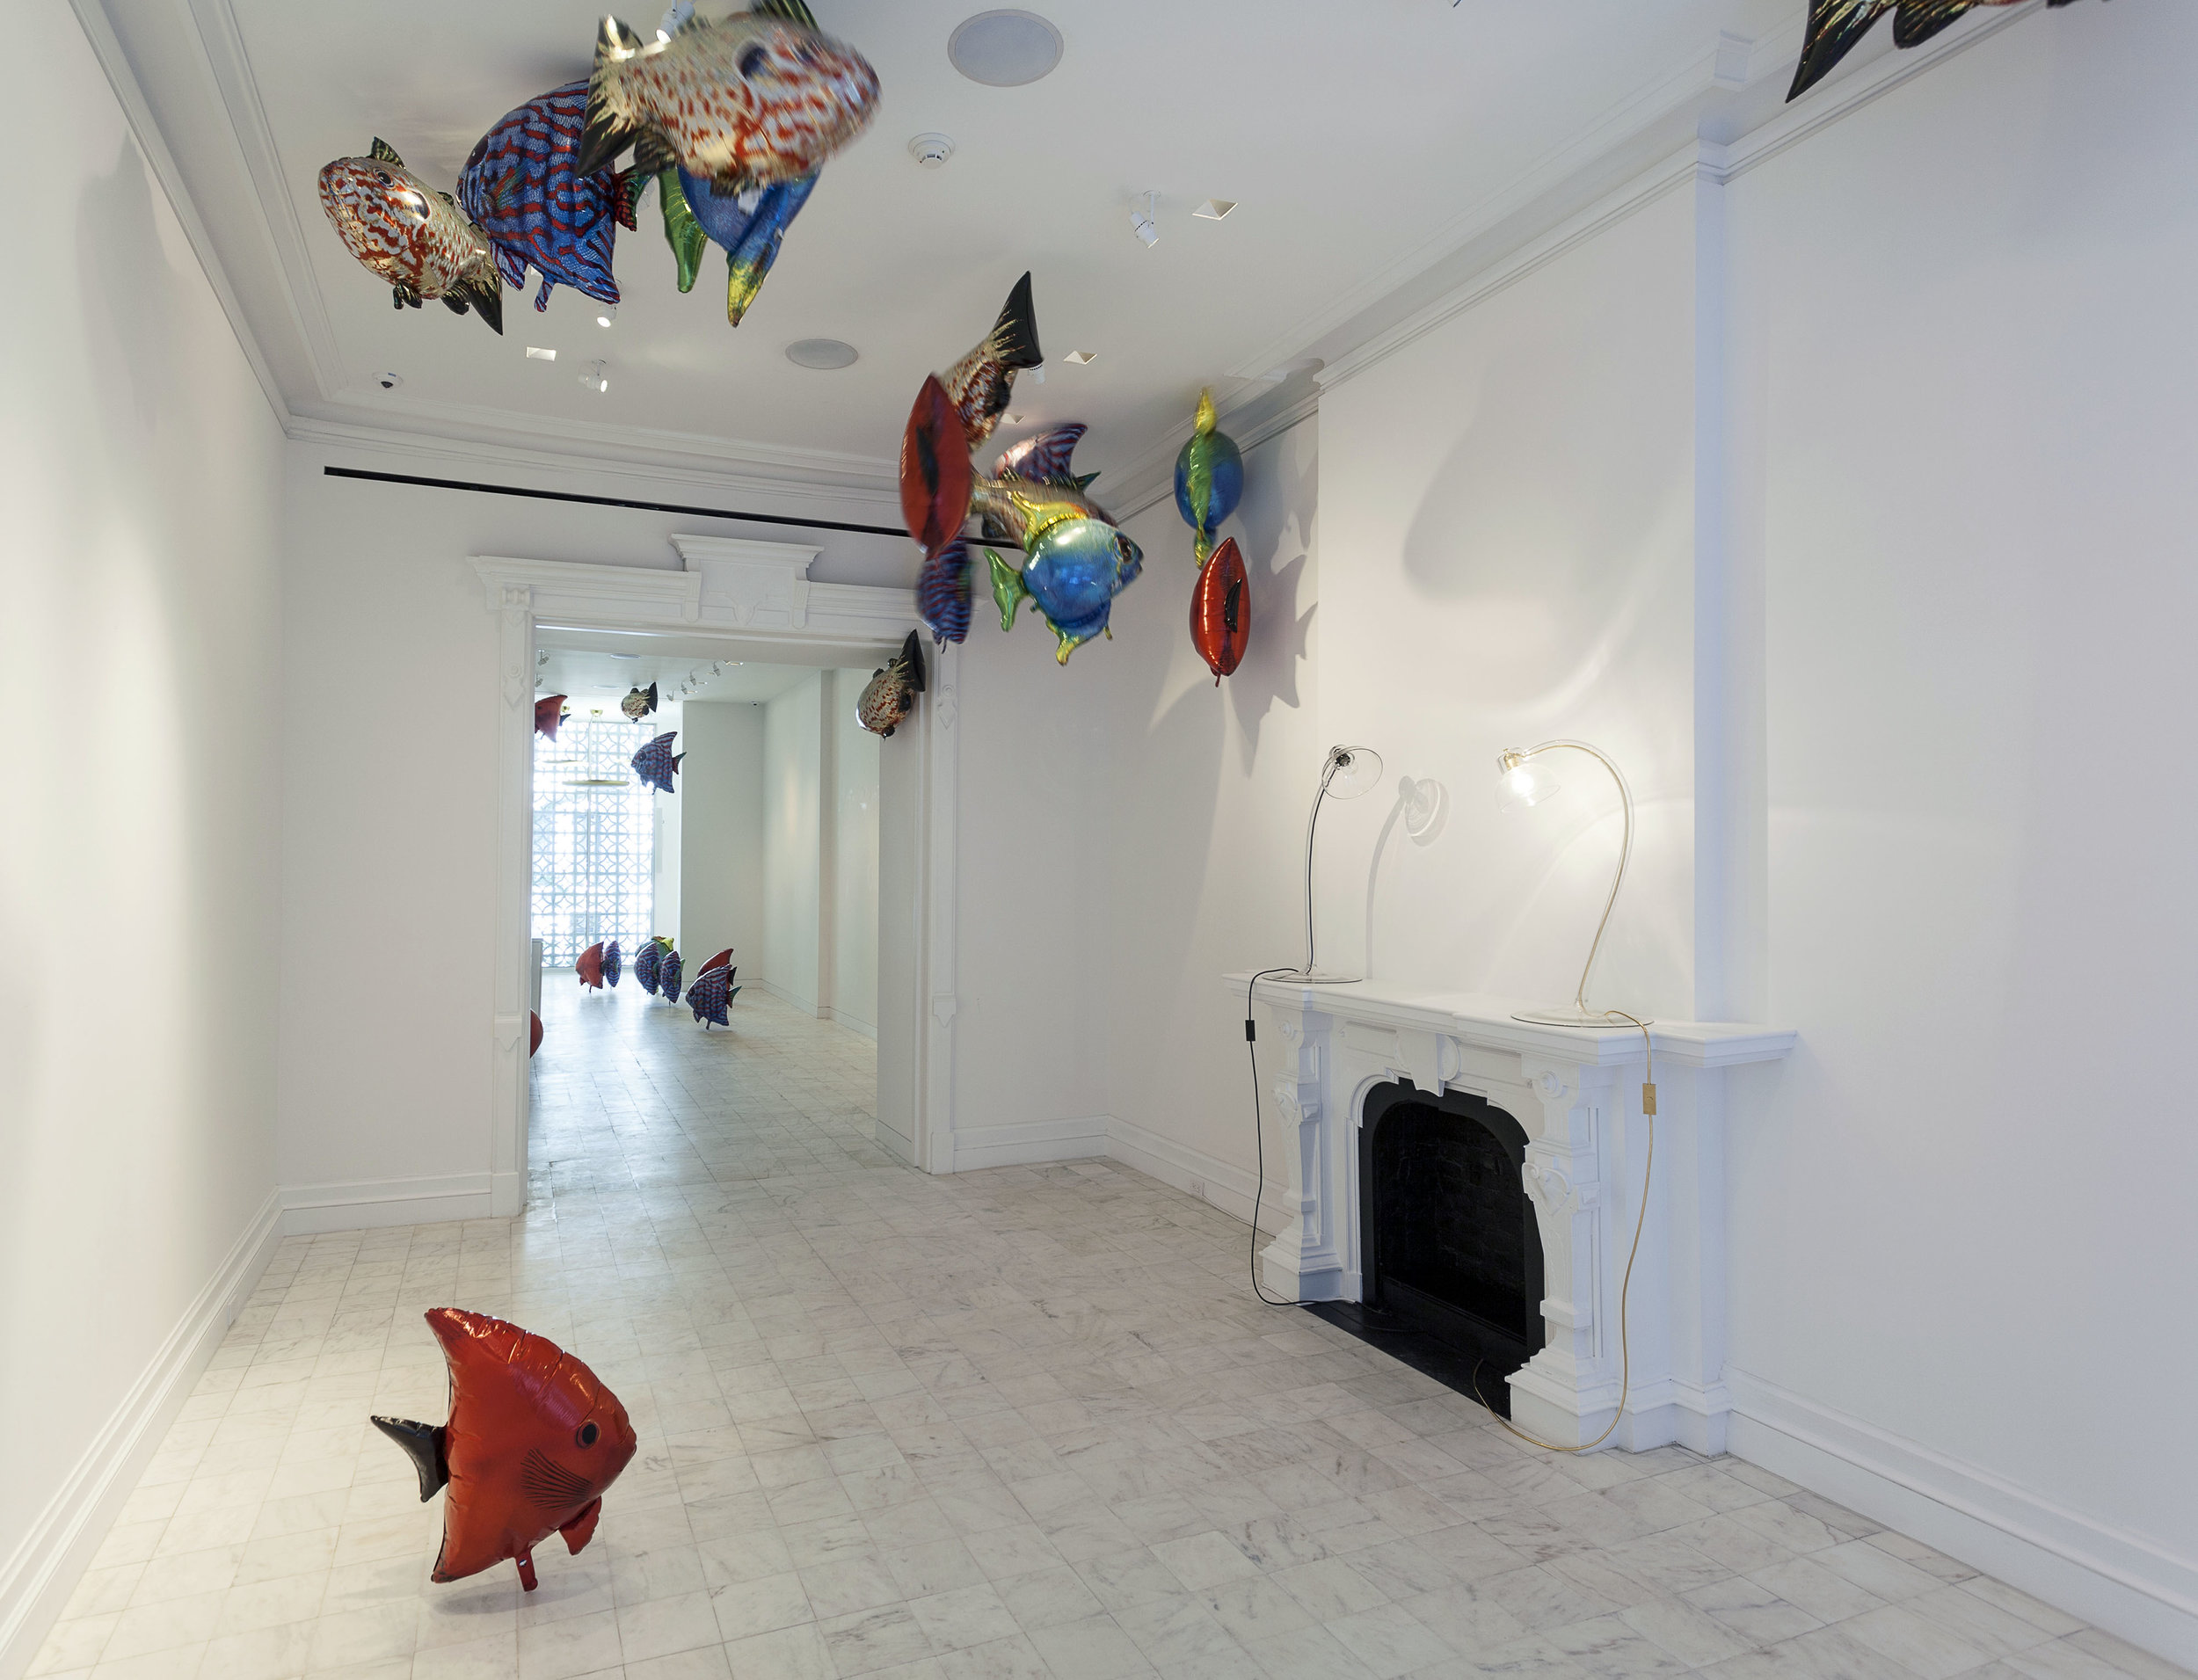 2016_Philippe_Parreno_My_Room_Is_Another_Fish_Bowl_PhilippeParreno_GladstoneGallery_PP_BGG16_64th_install_17_4000w.jpg